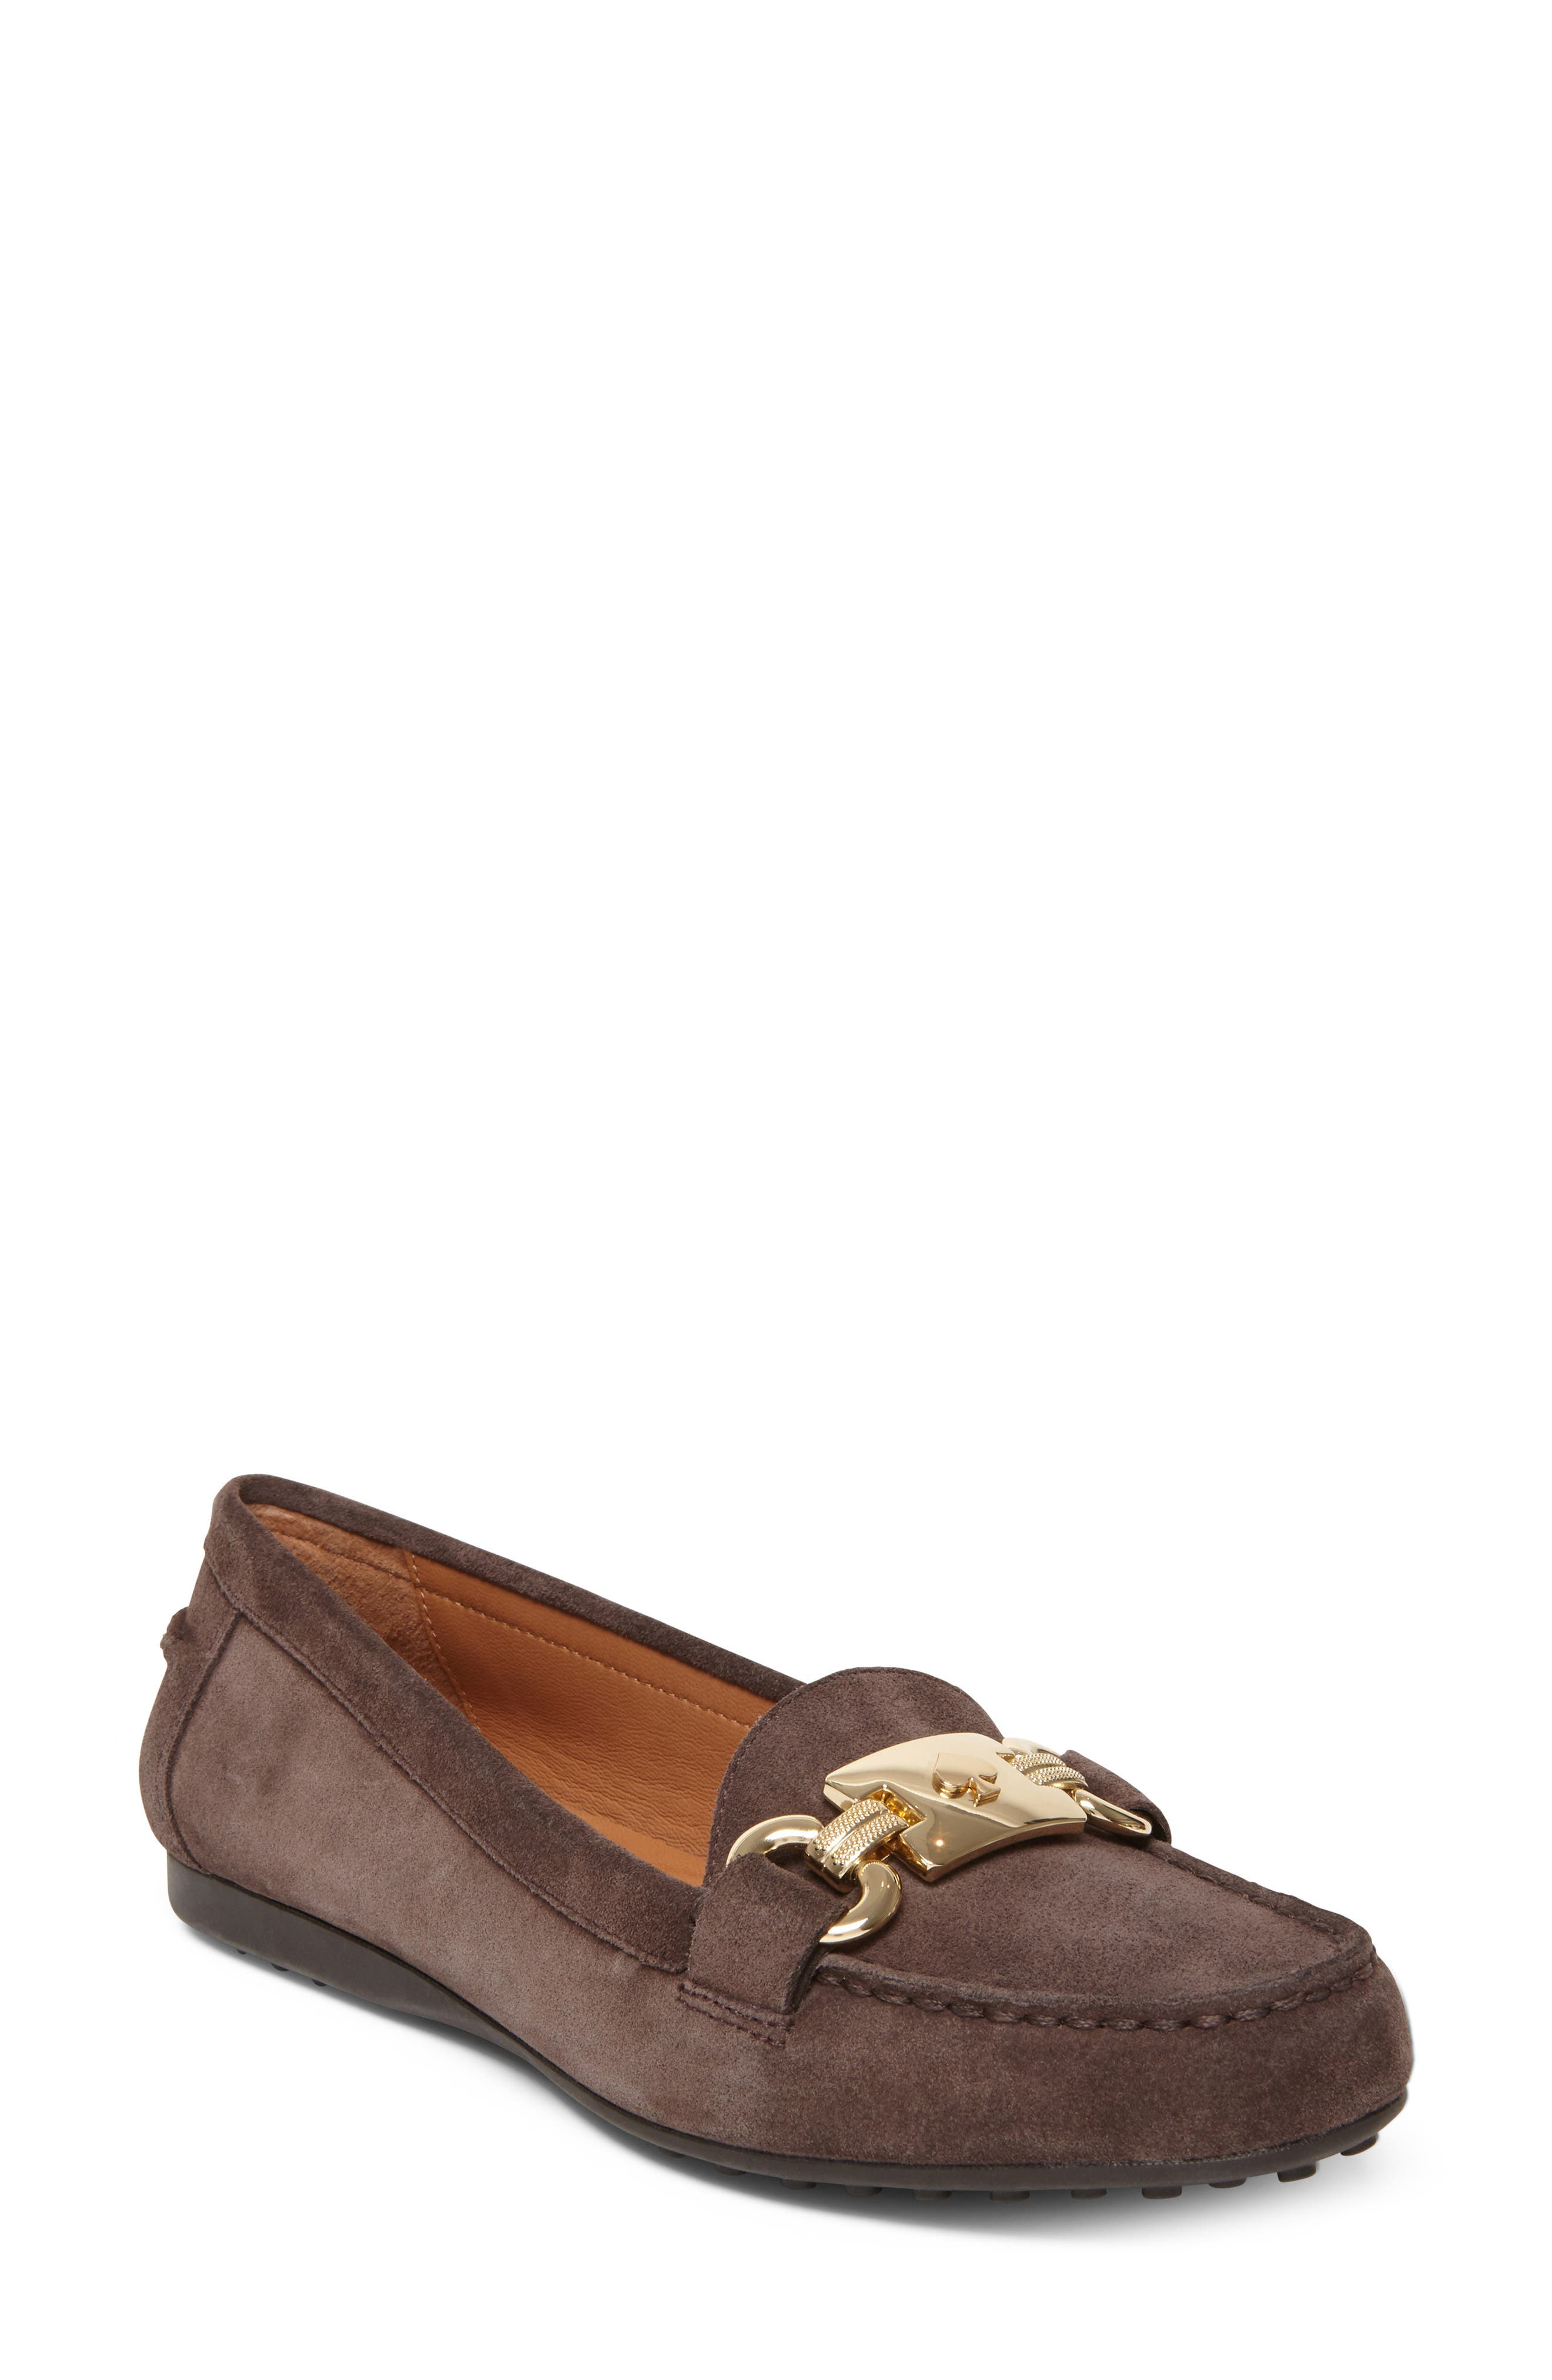 Kate Spade New York Carson Loafer, Brown